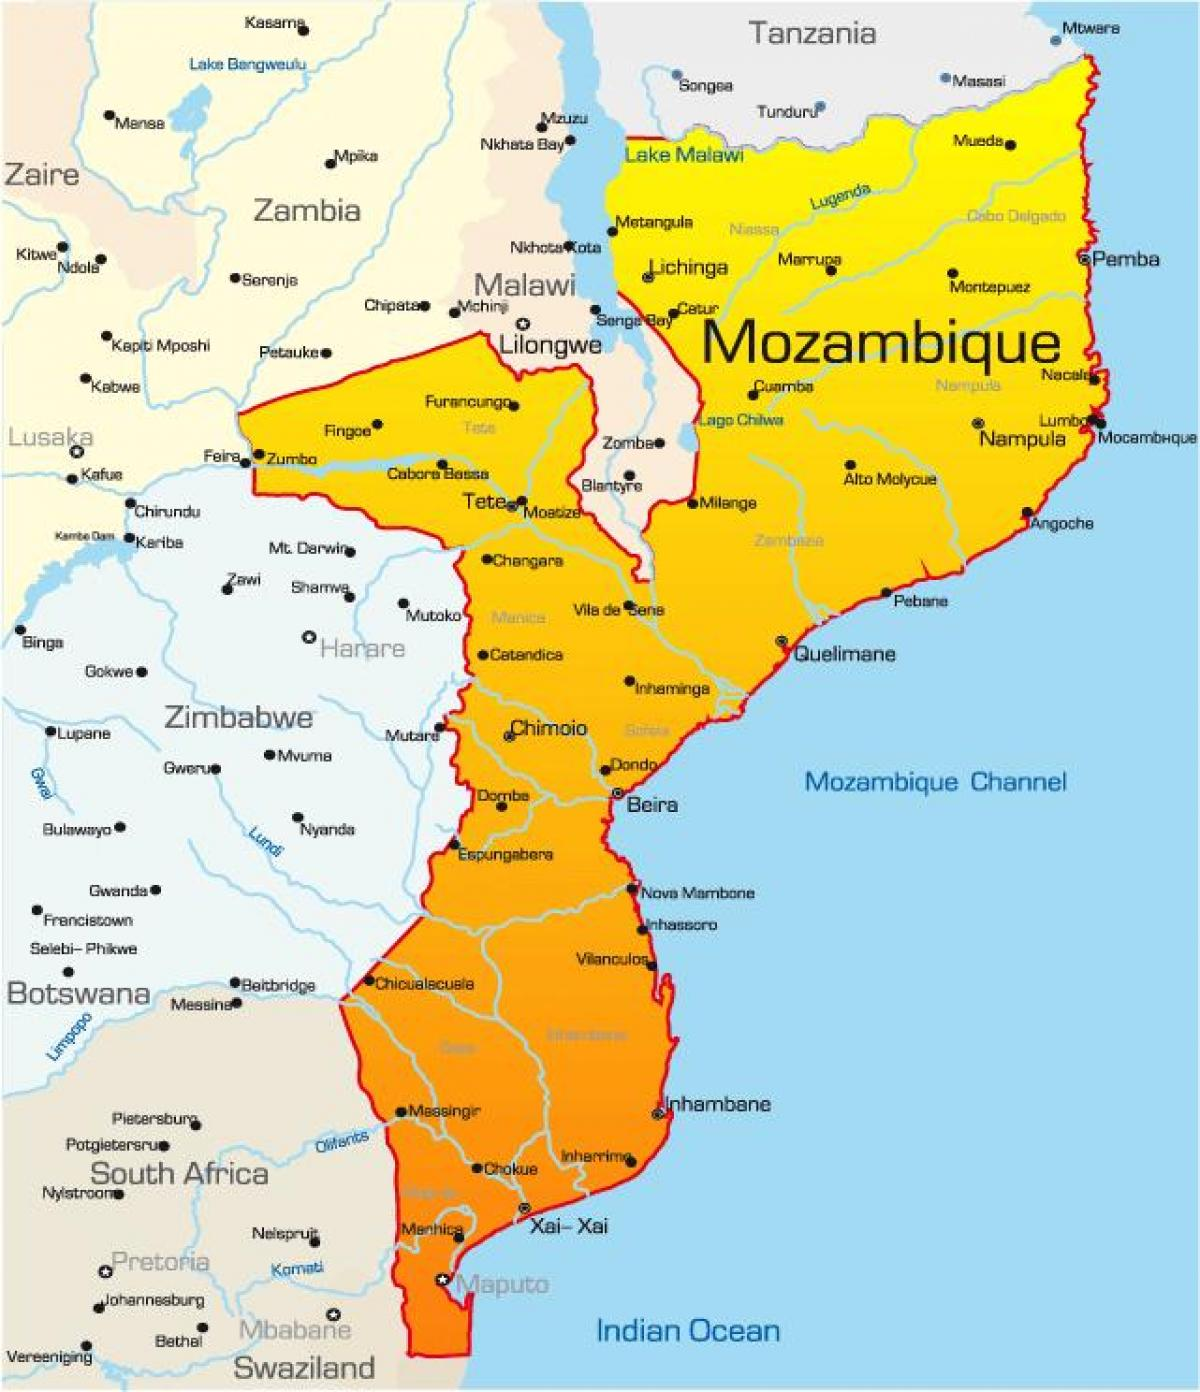 map of Mozambique map with distances